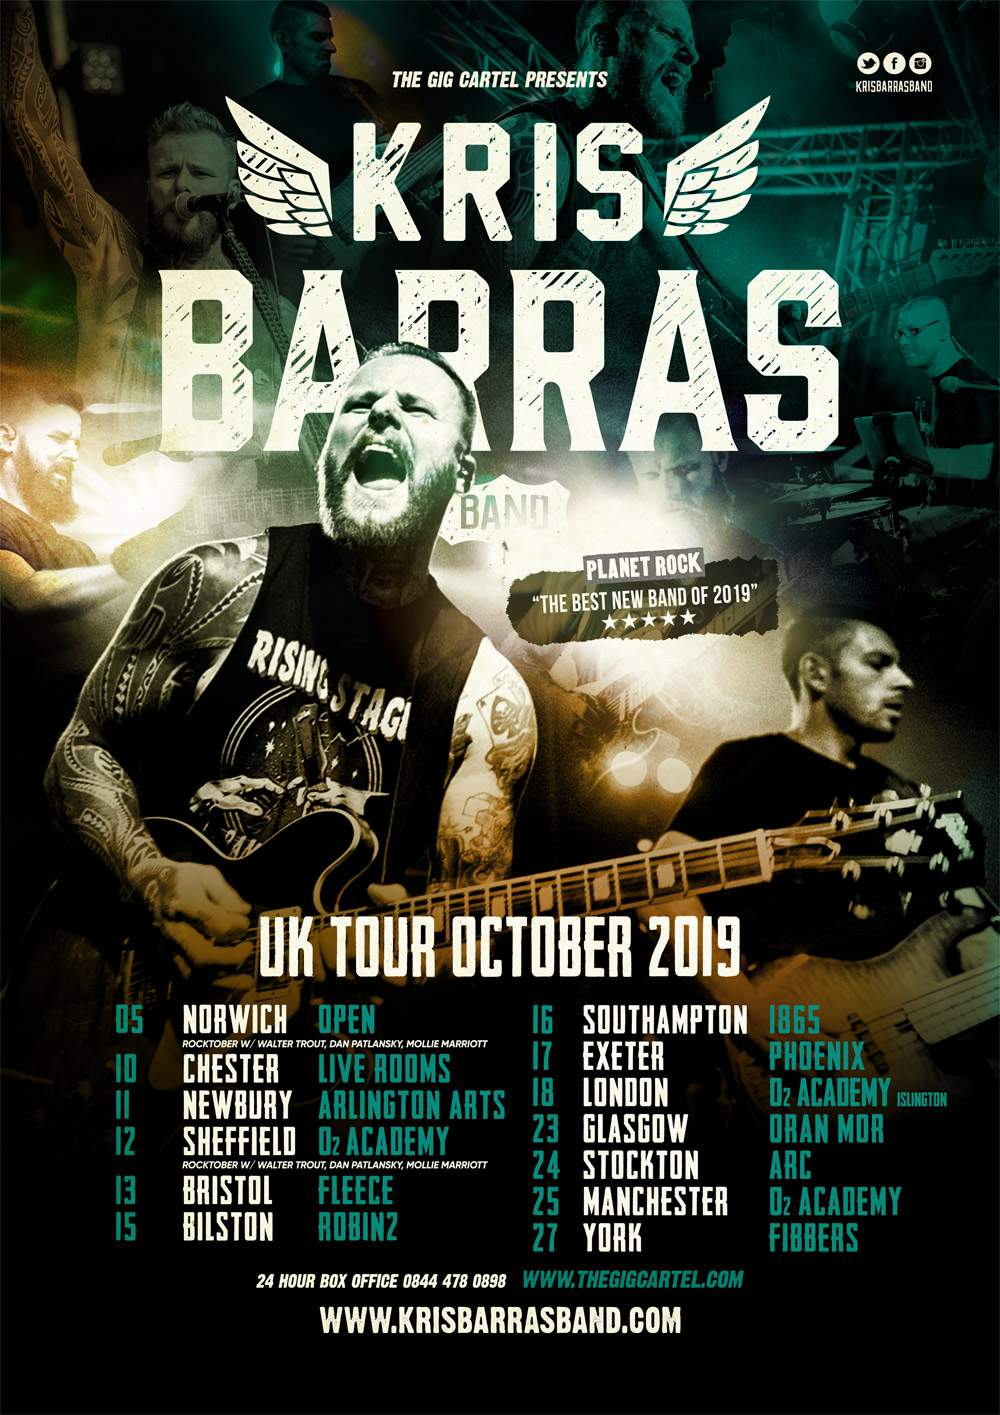 Kris Barras Band Tour Dates UK 2019